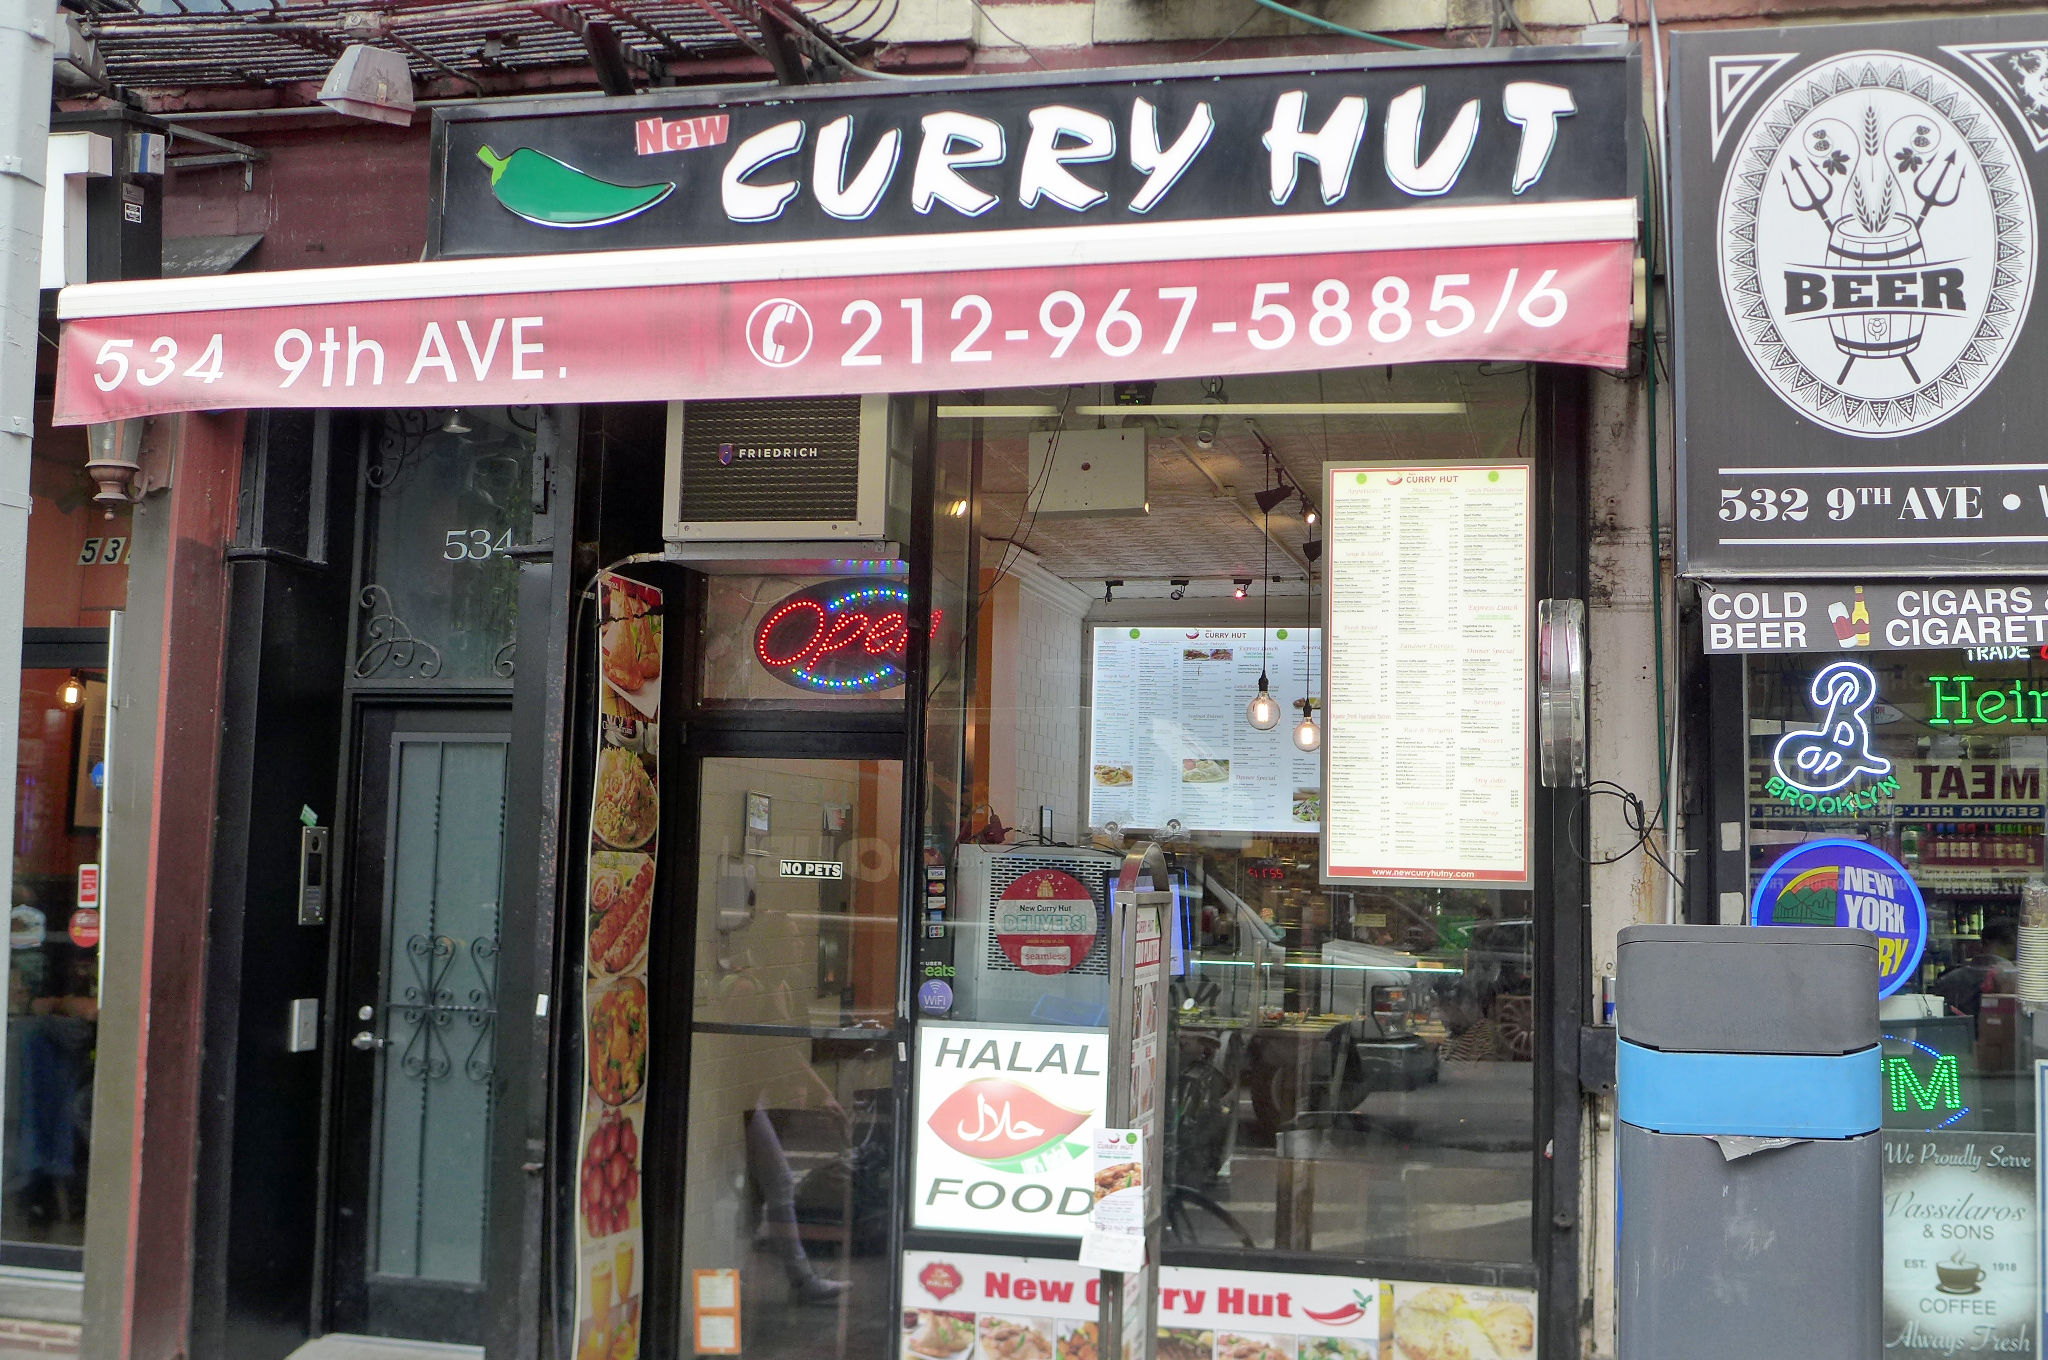 Hell's Kitchen's Curry Hut